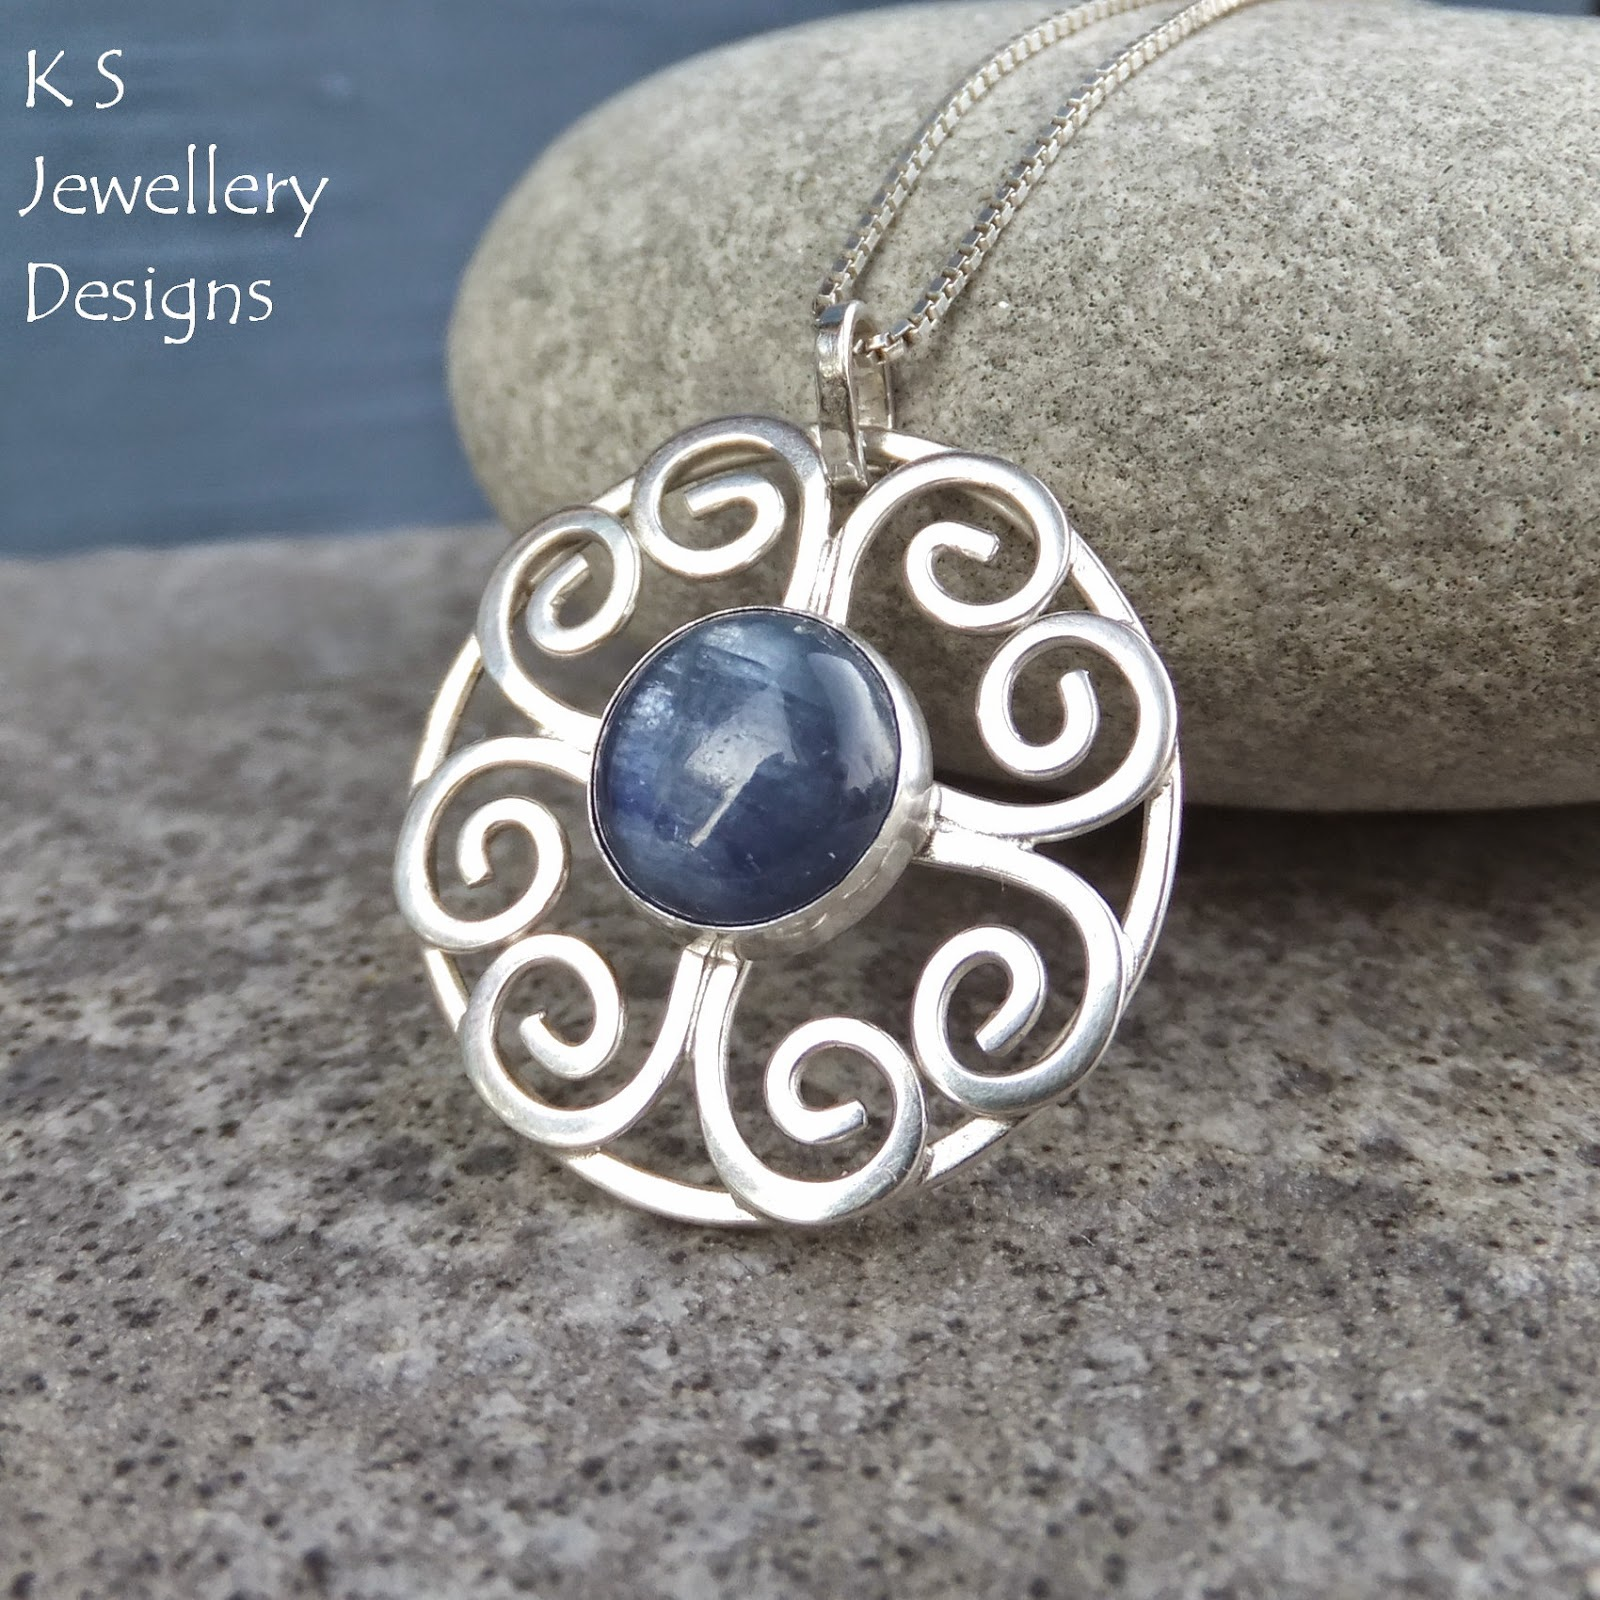 http://ksjewellerydesigns.co.uk/ourshop/prod_3584224-Kyanite-Heart-Circle-Sterling-Silver-Pendant.html